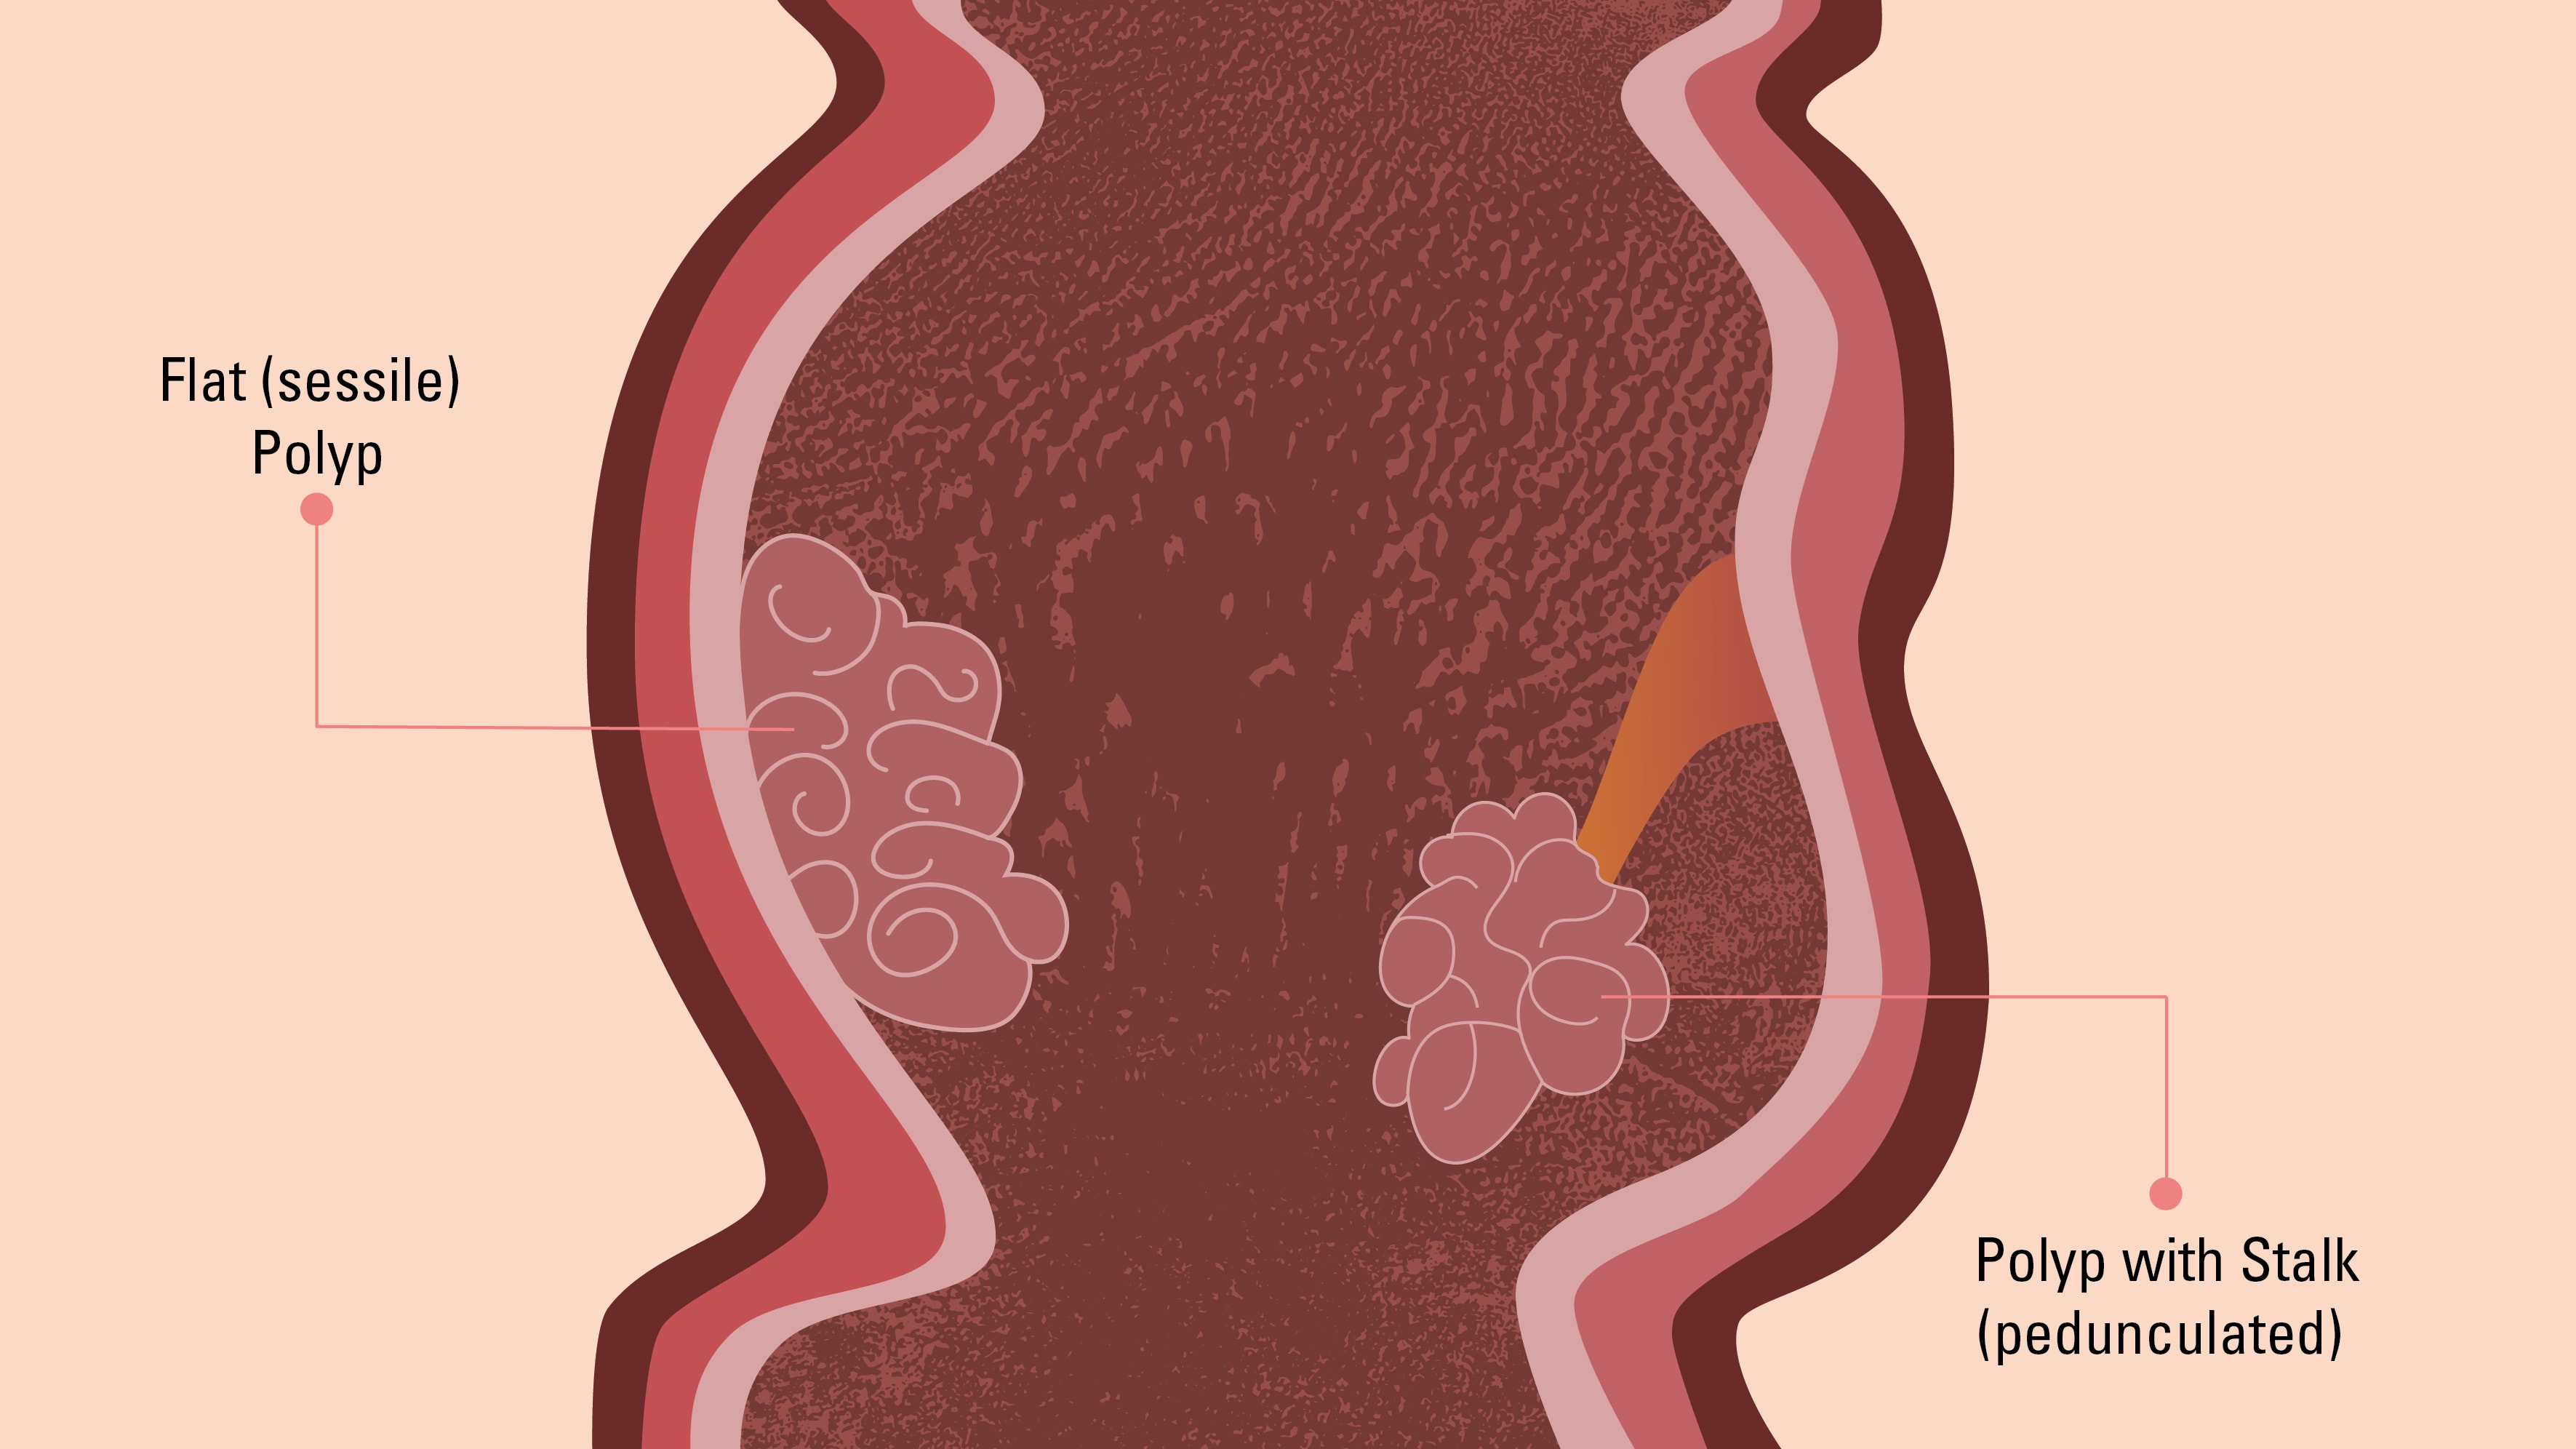 Graphic depicting sessile and pedunculated colon polyps